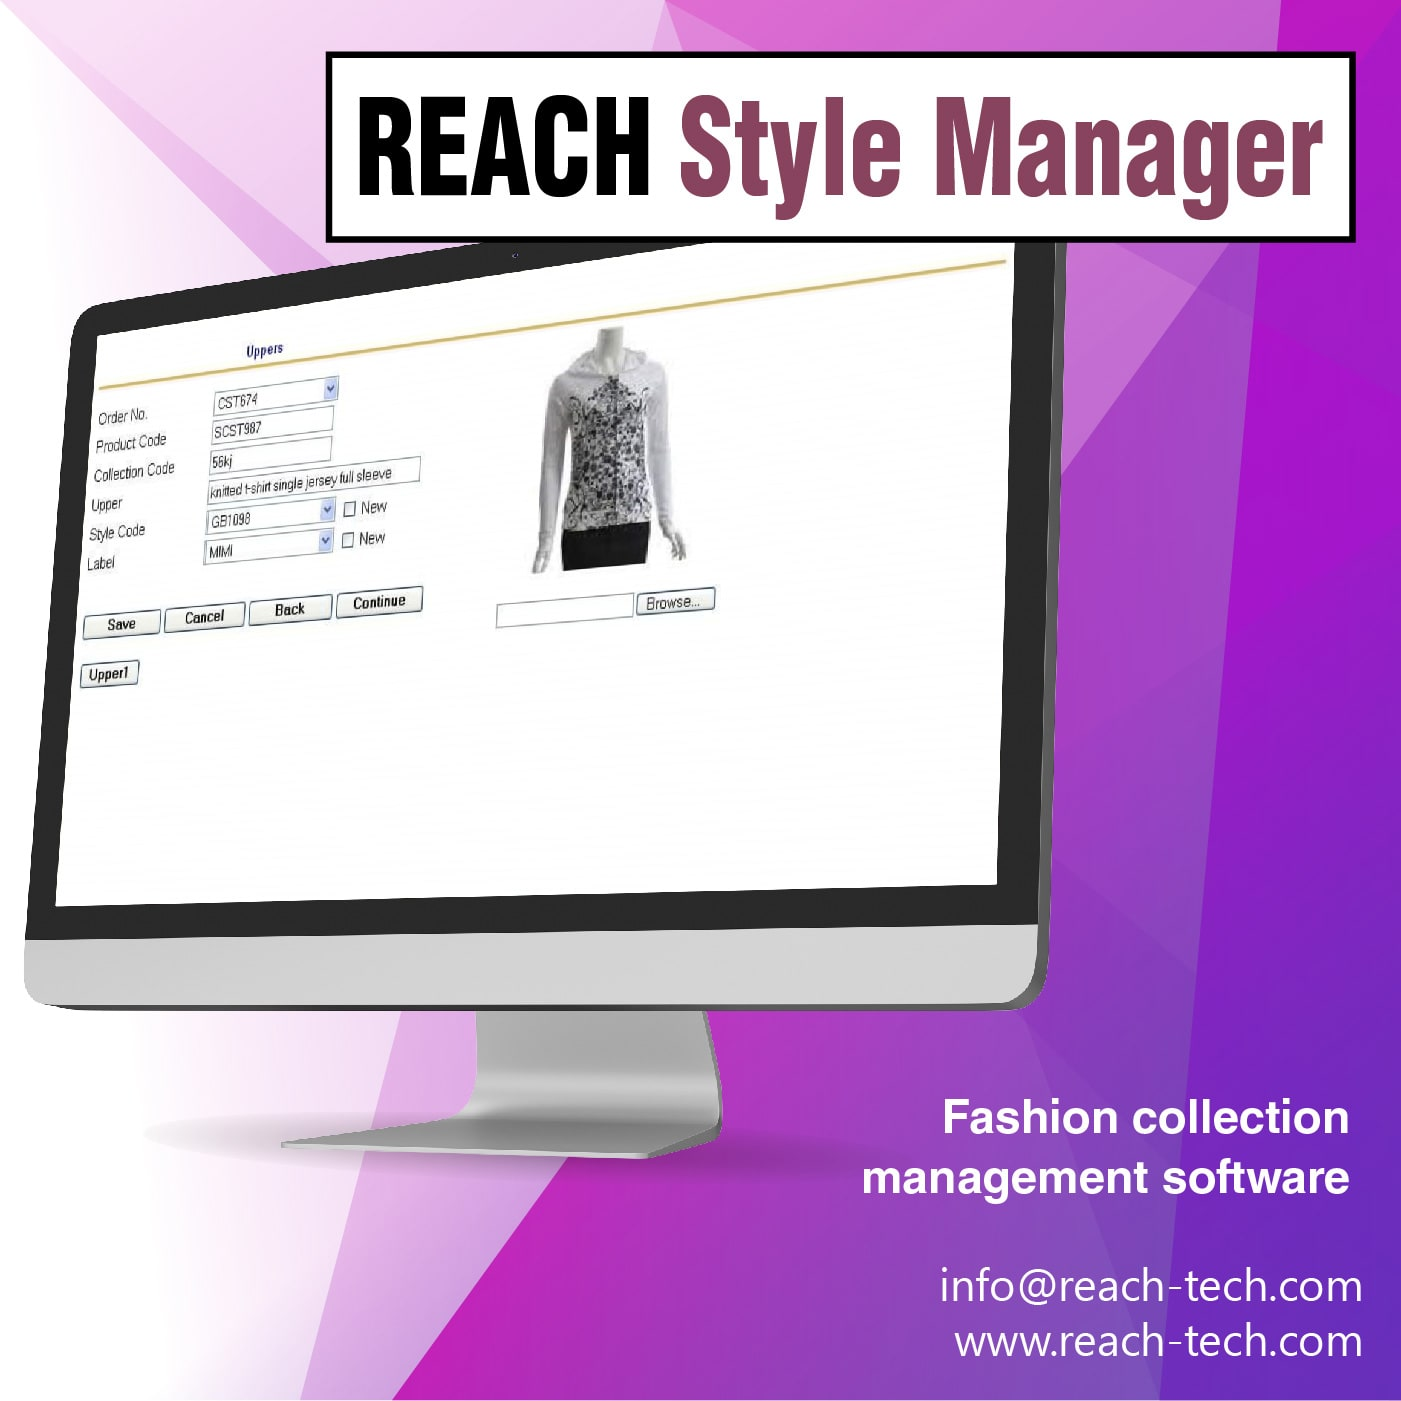 apparel-collection-management-software-5